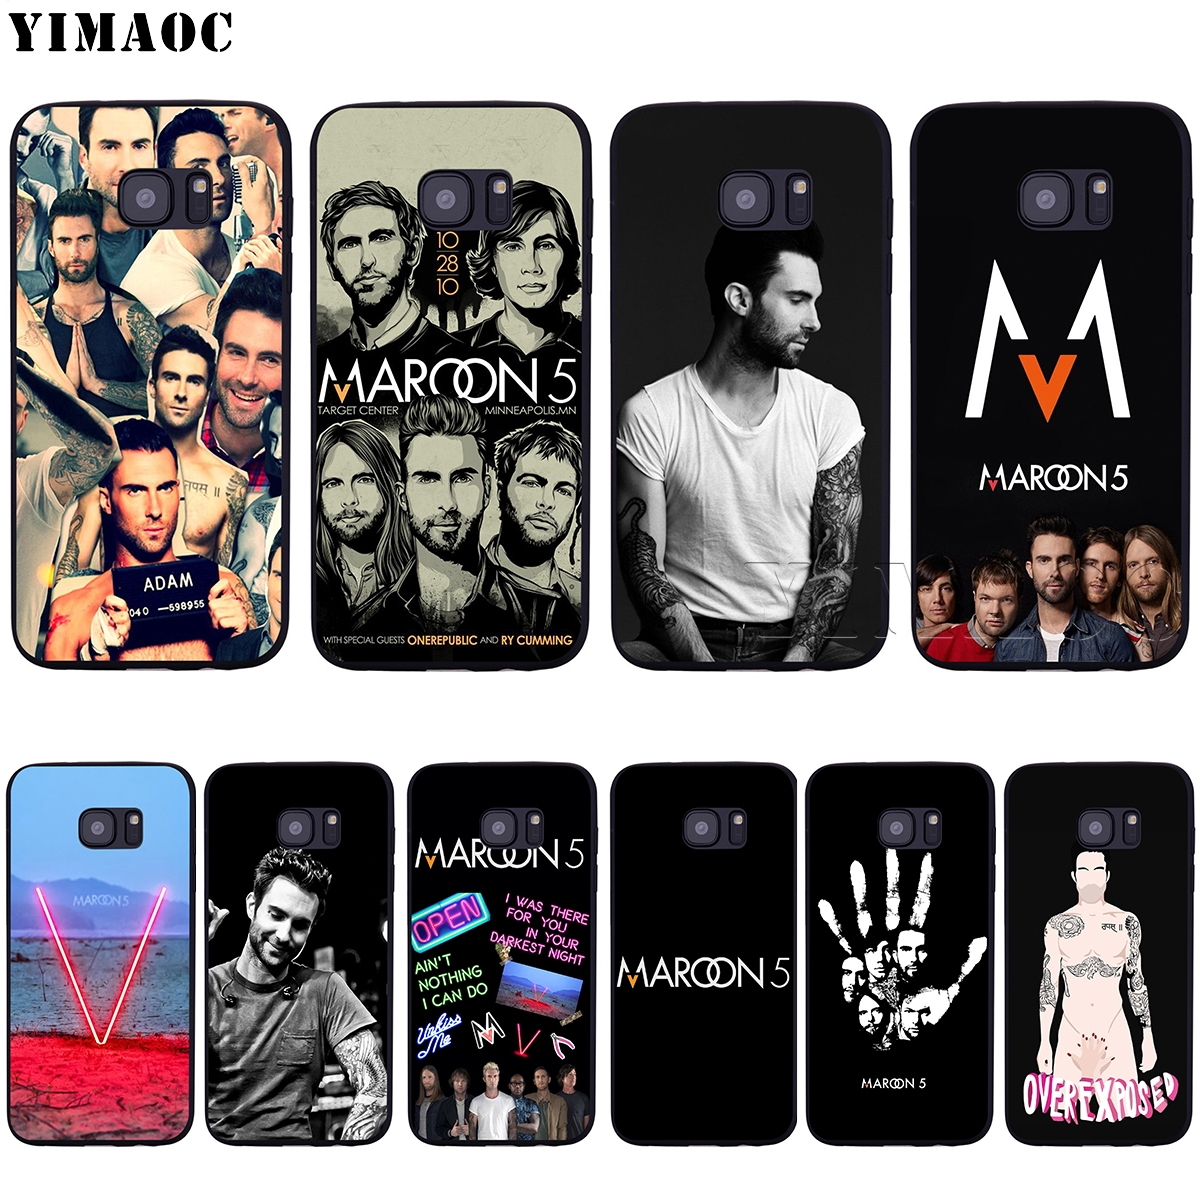 YIMAOC Maroon 5 Adam Levine Soft Silicone Case for Samsung Galaxy S6 S7 Edge S8 S9 Plus A3 A5 2016 2017 ...